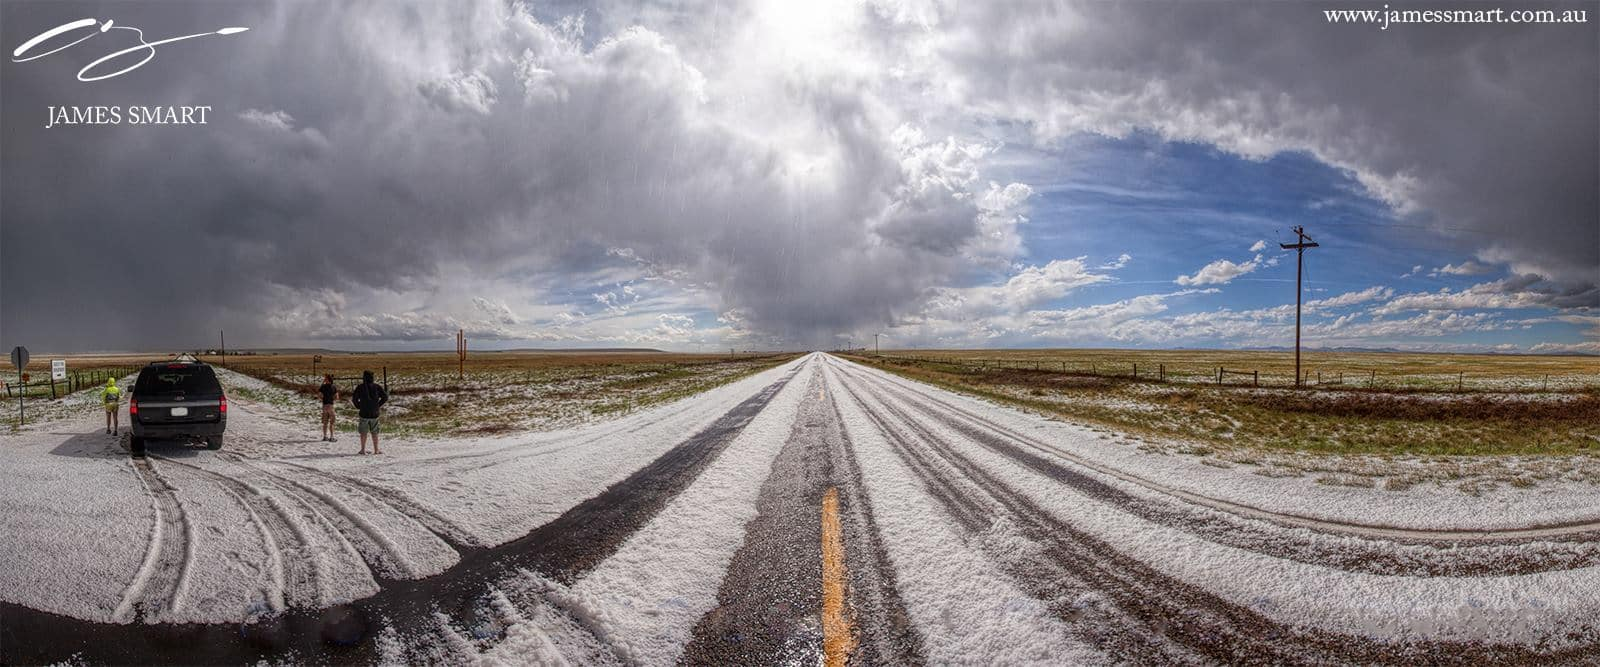 Huge amount of hail hit us near the town of Abbott, New Mexico yesterday. About 1.5 inch covered the roads and nearby fields.